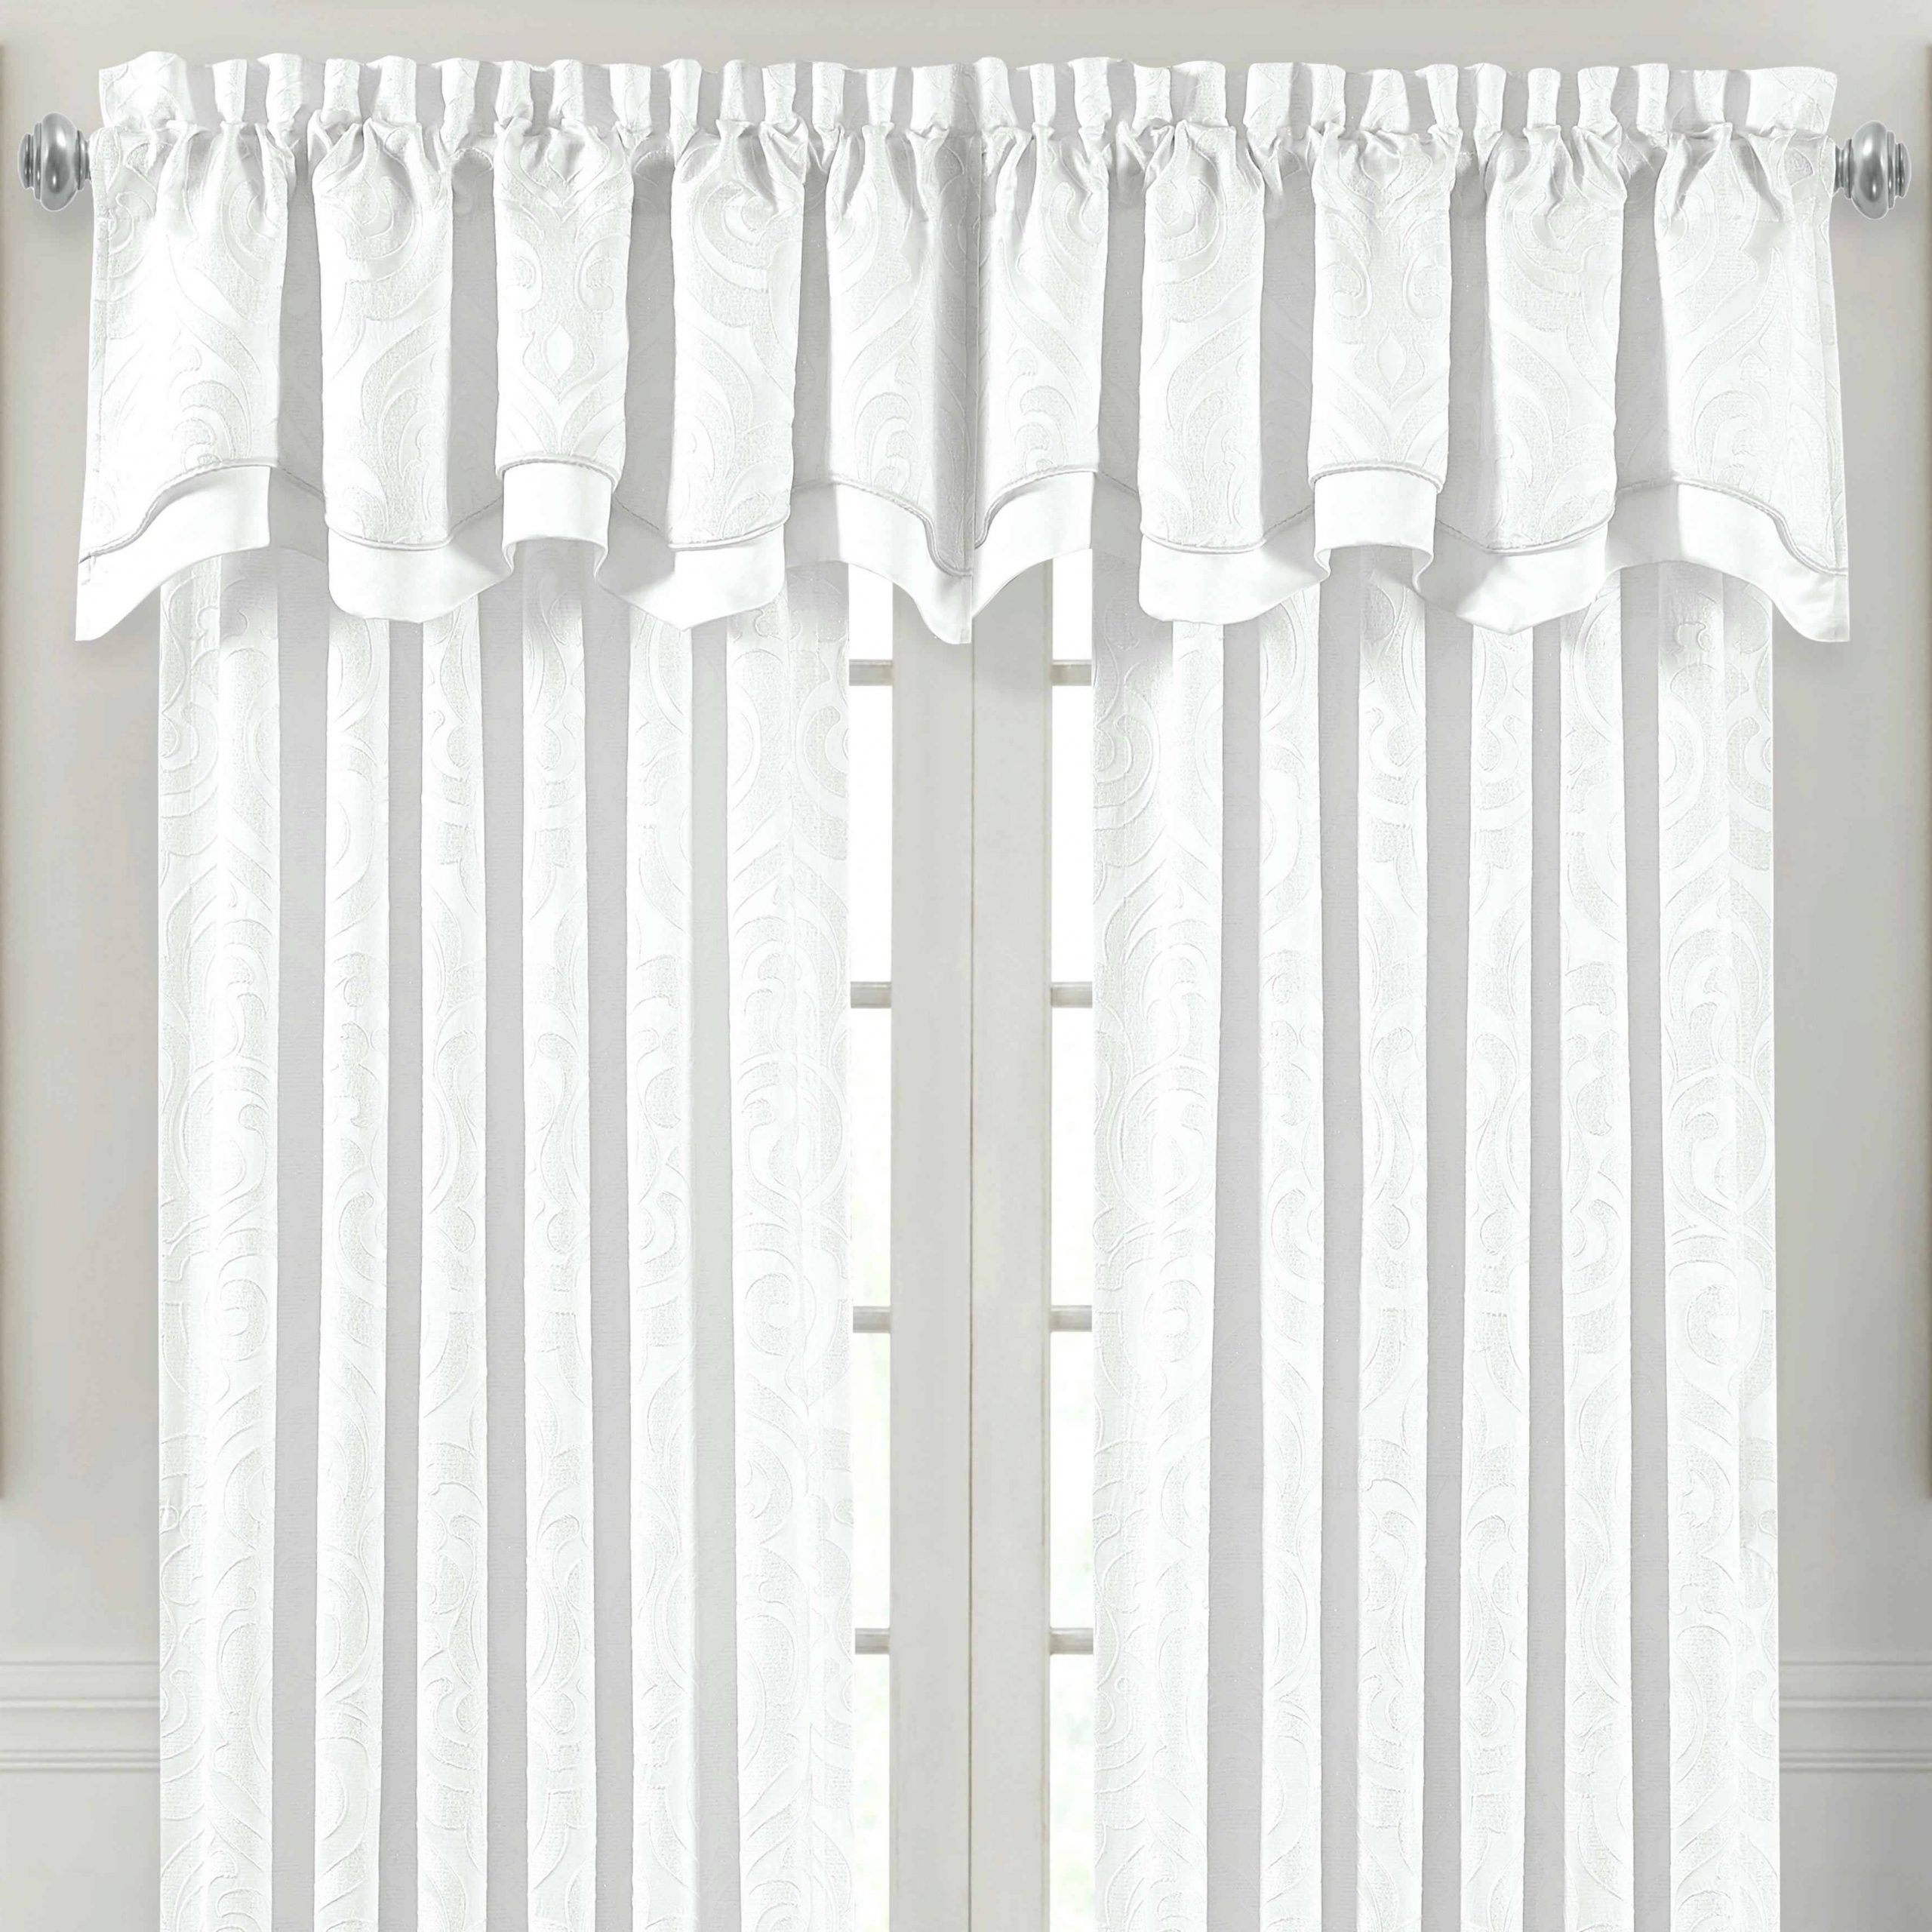 Current Modern Subtle Texture Solid White Kitchen Curtain Parts With Grommets Tier And Valance Options Throughout Excellent Kitchen Valance Red Curtains Make Burlap For (View 14 of 20)